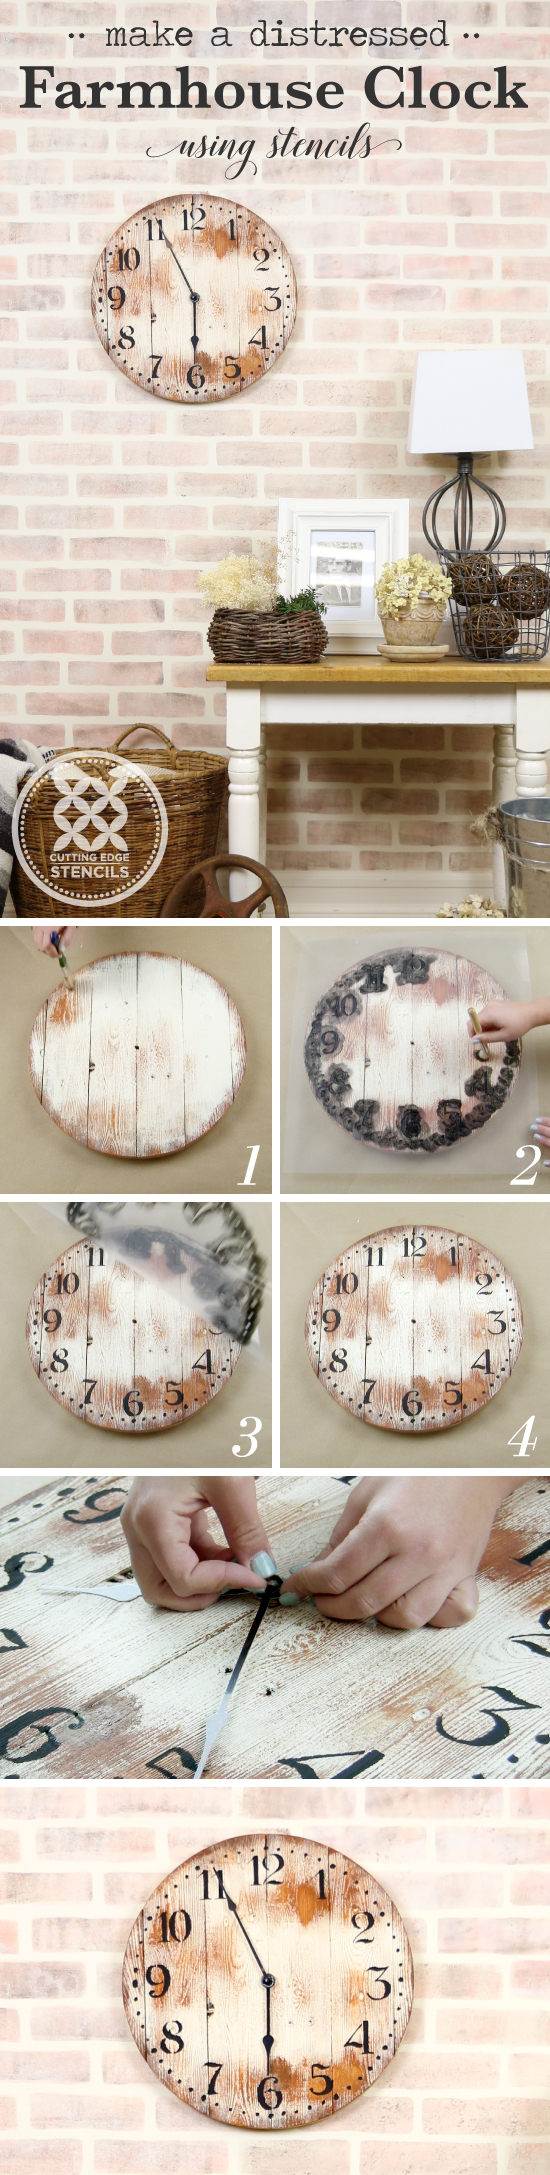 Cutting Edge Stencils shares a craft tutorial on how to make a distressed farmhouse clock using the Old Farm Clock Wall Stencil. http://www.cuttingedgestencils.com/old-farm-clock-stencil-farmhouse-clock-design.html